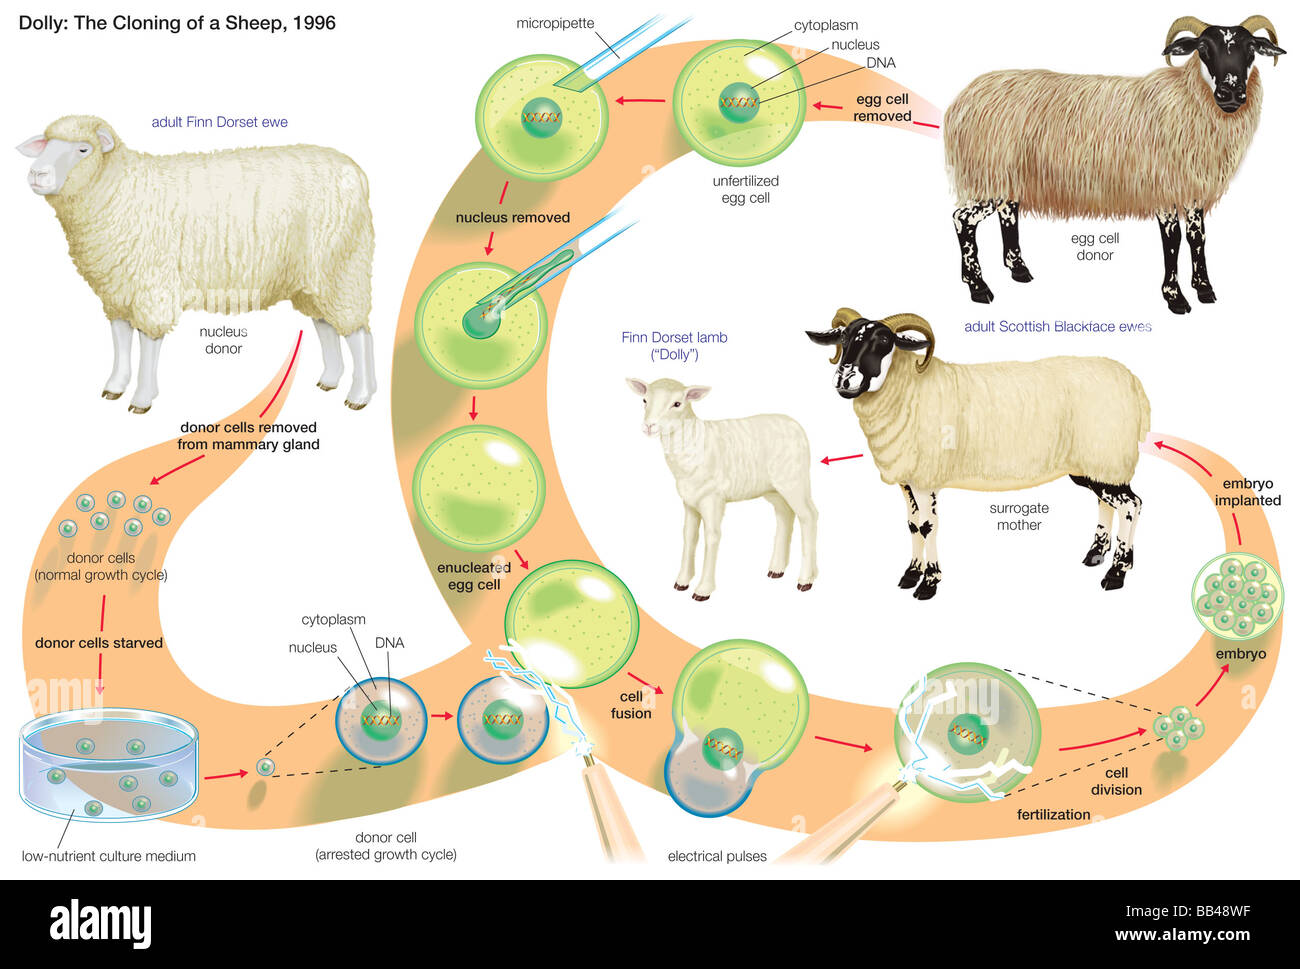 dolly the sheep cloning diagram contactor wiring a1 a2 process through which a female finn dorset